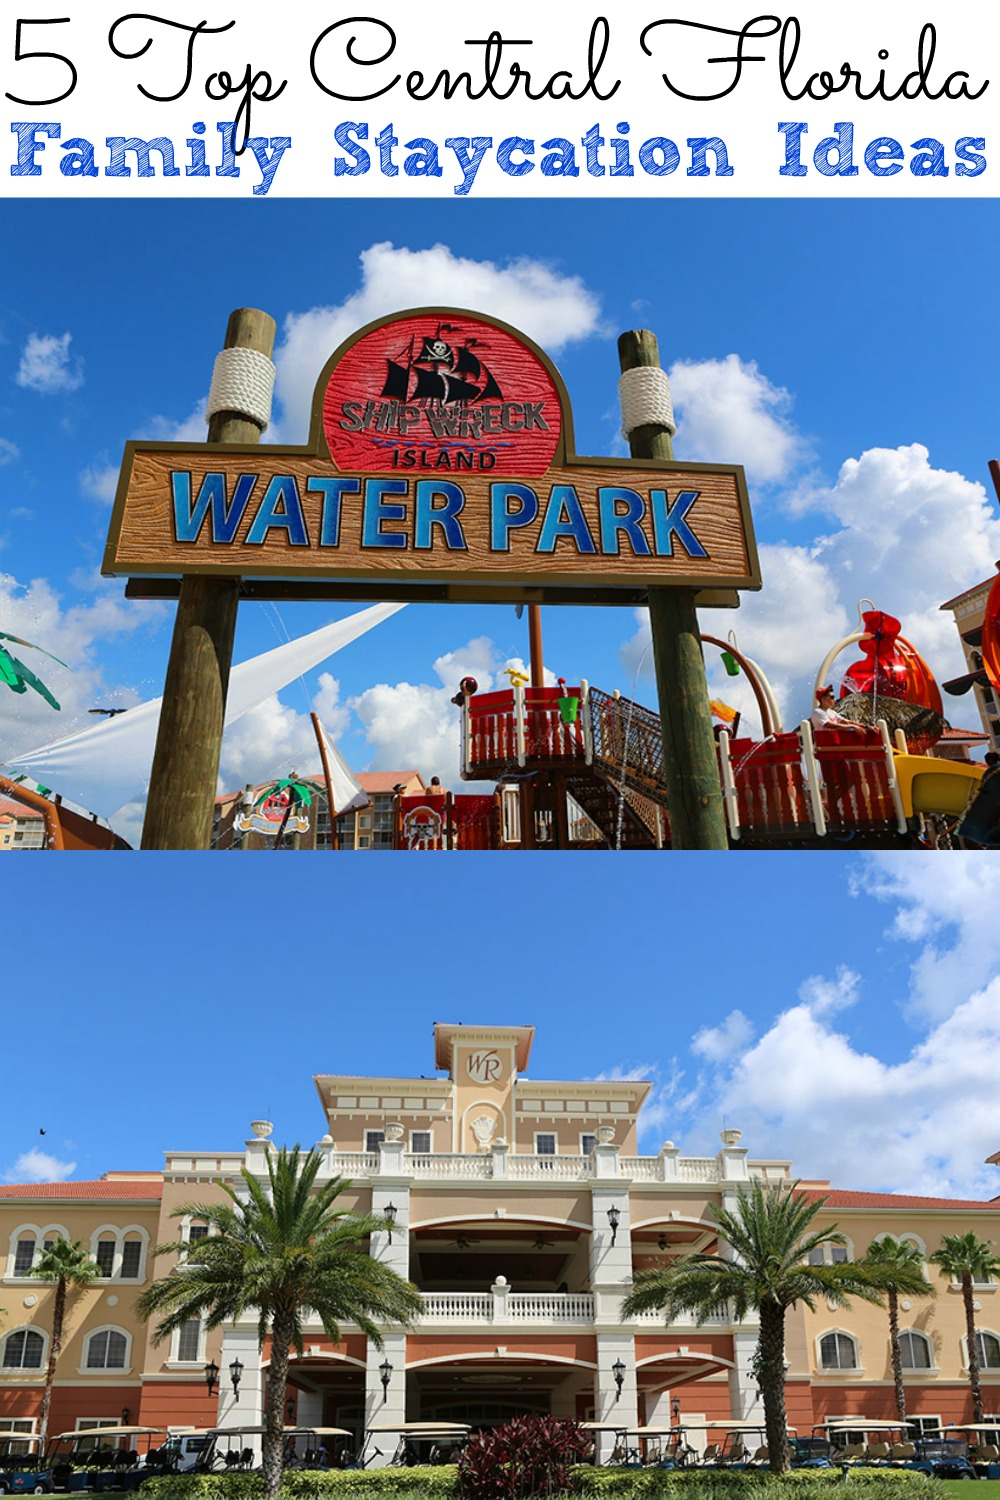 5 Top Central Florida Family Staycation Ideas - abccreativelearning.com